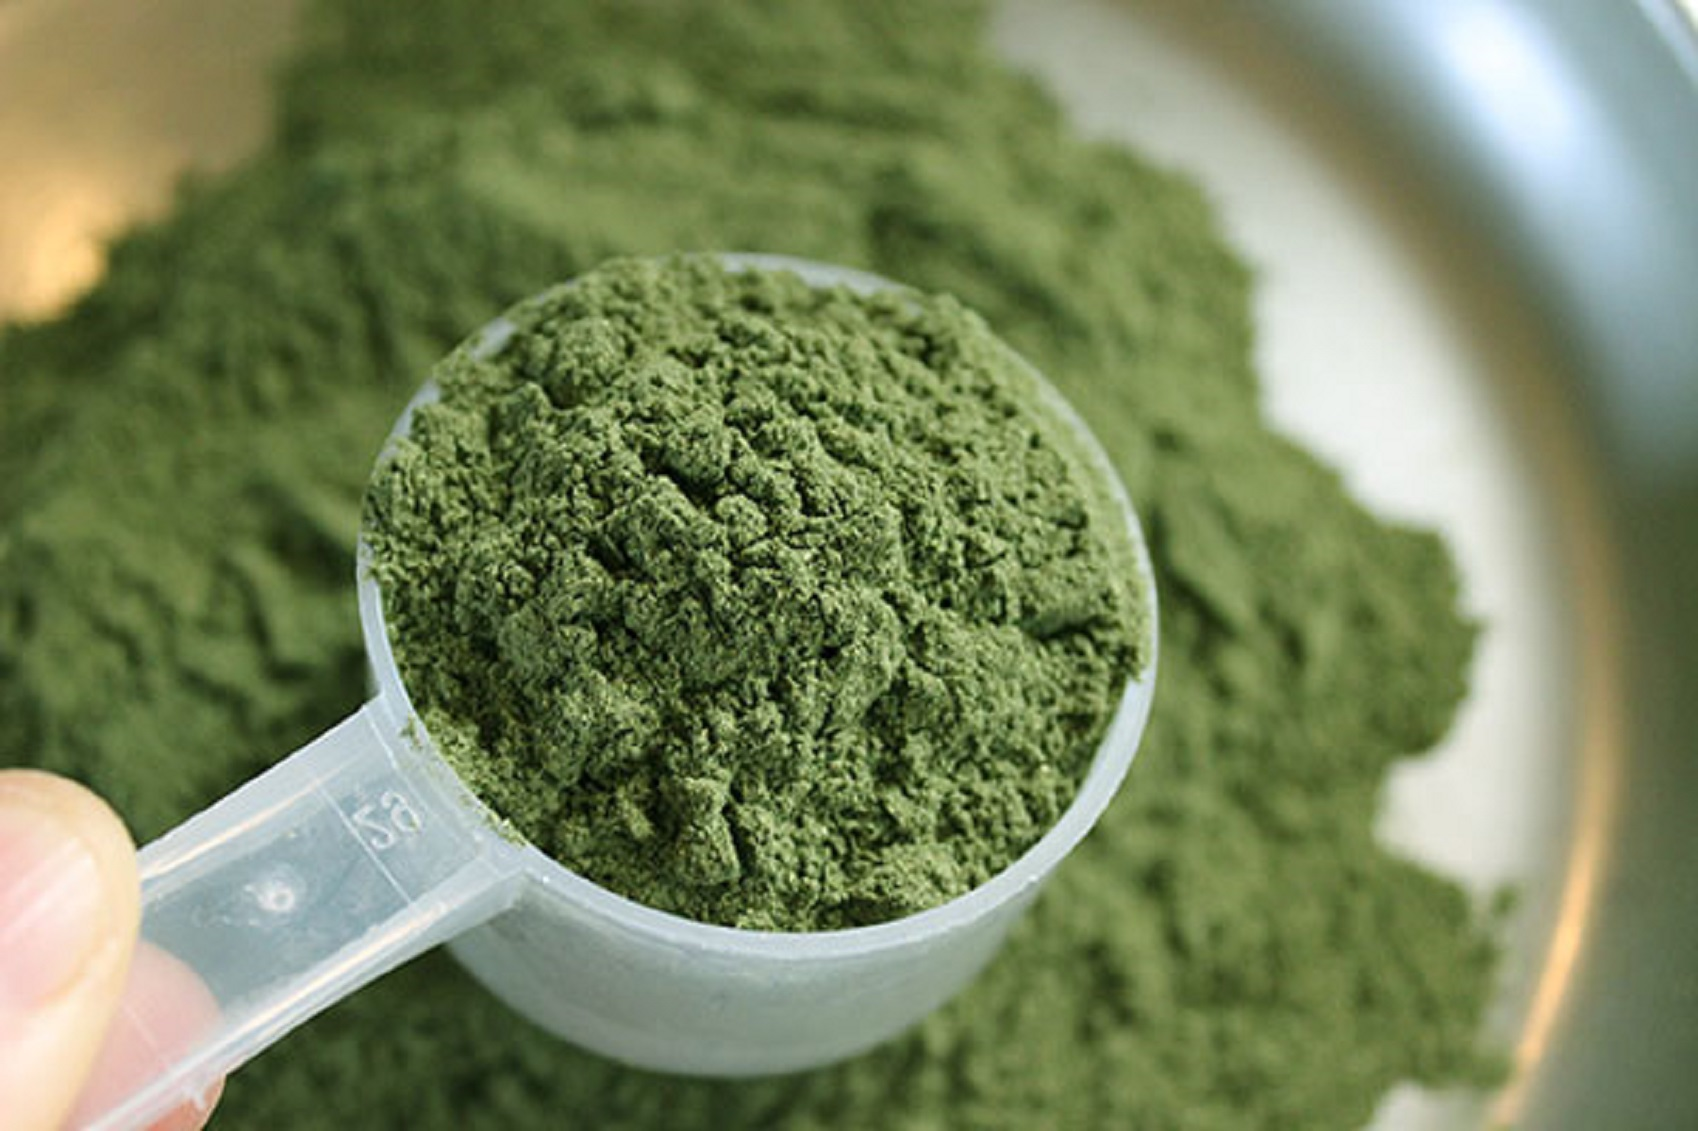 The Super in Super Green Malay Kratom Strain